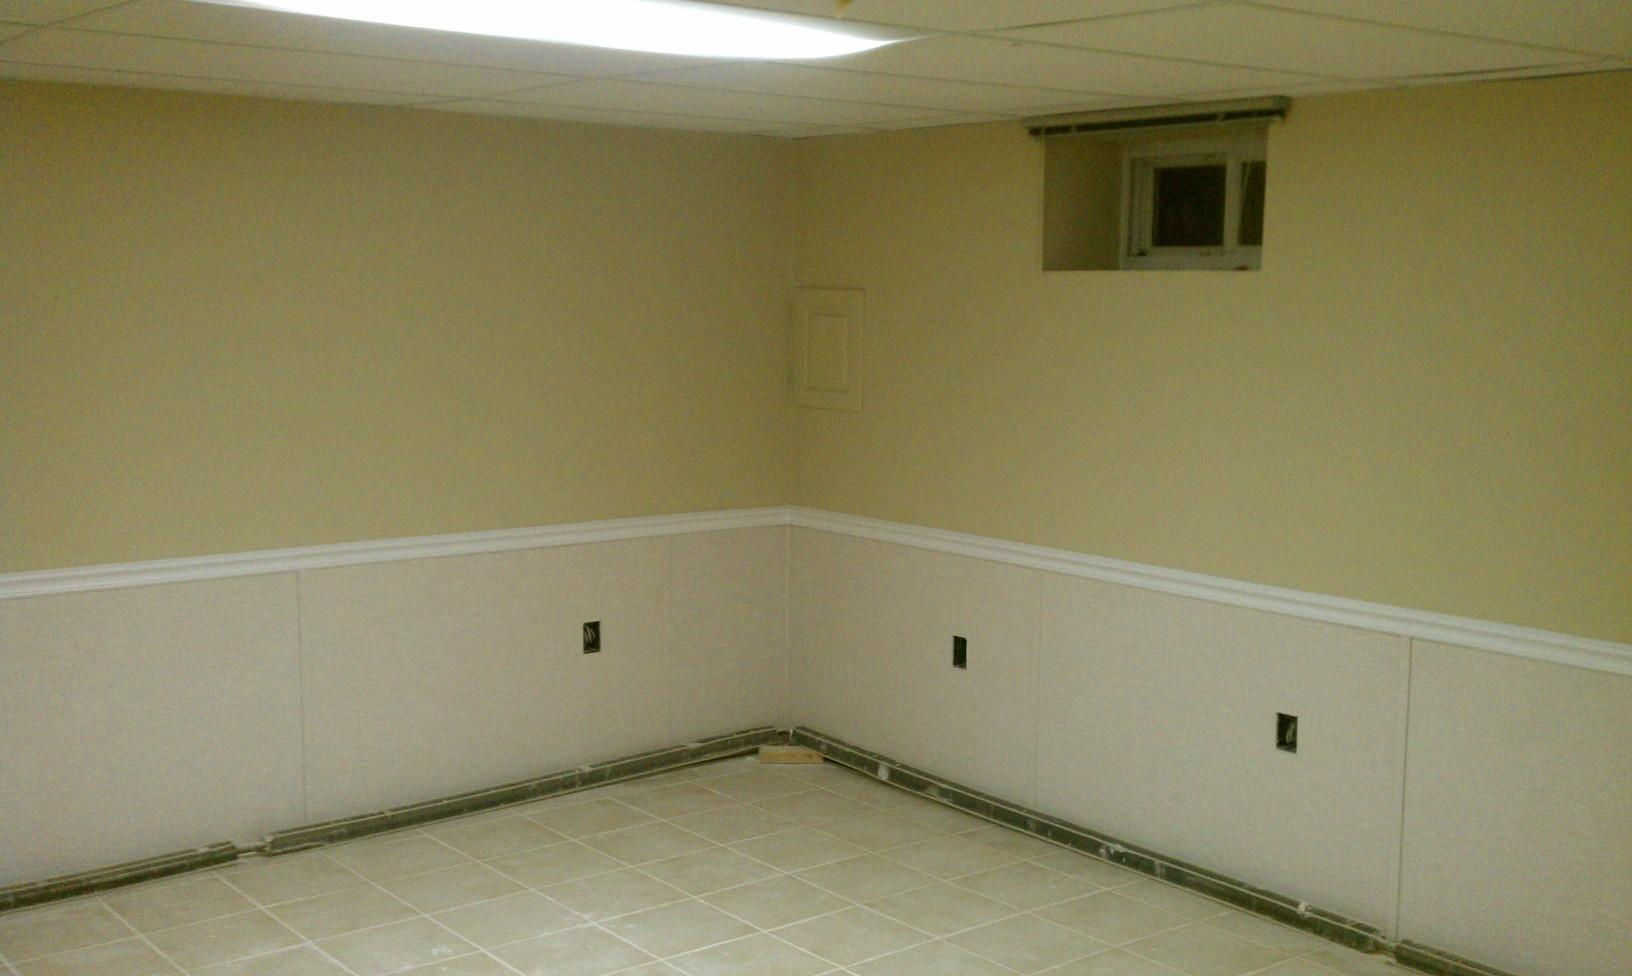 Everlast walls look GREAT! - After Photo